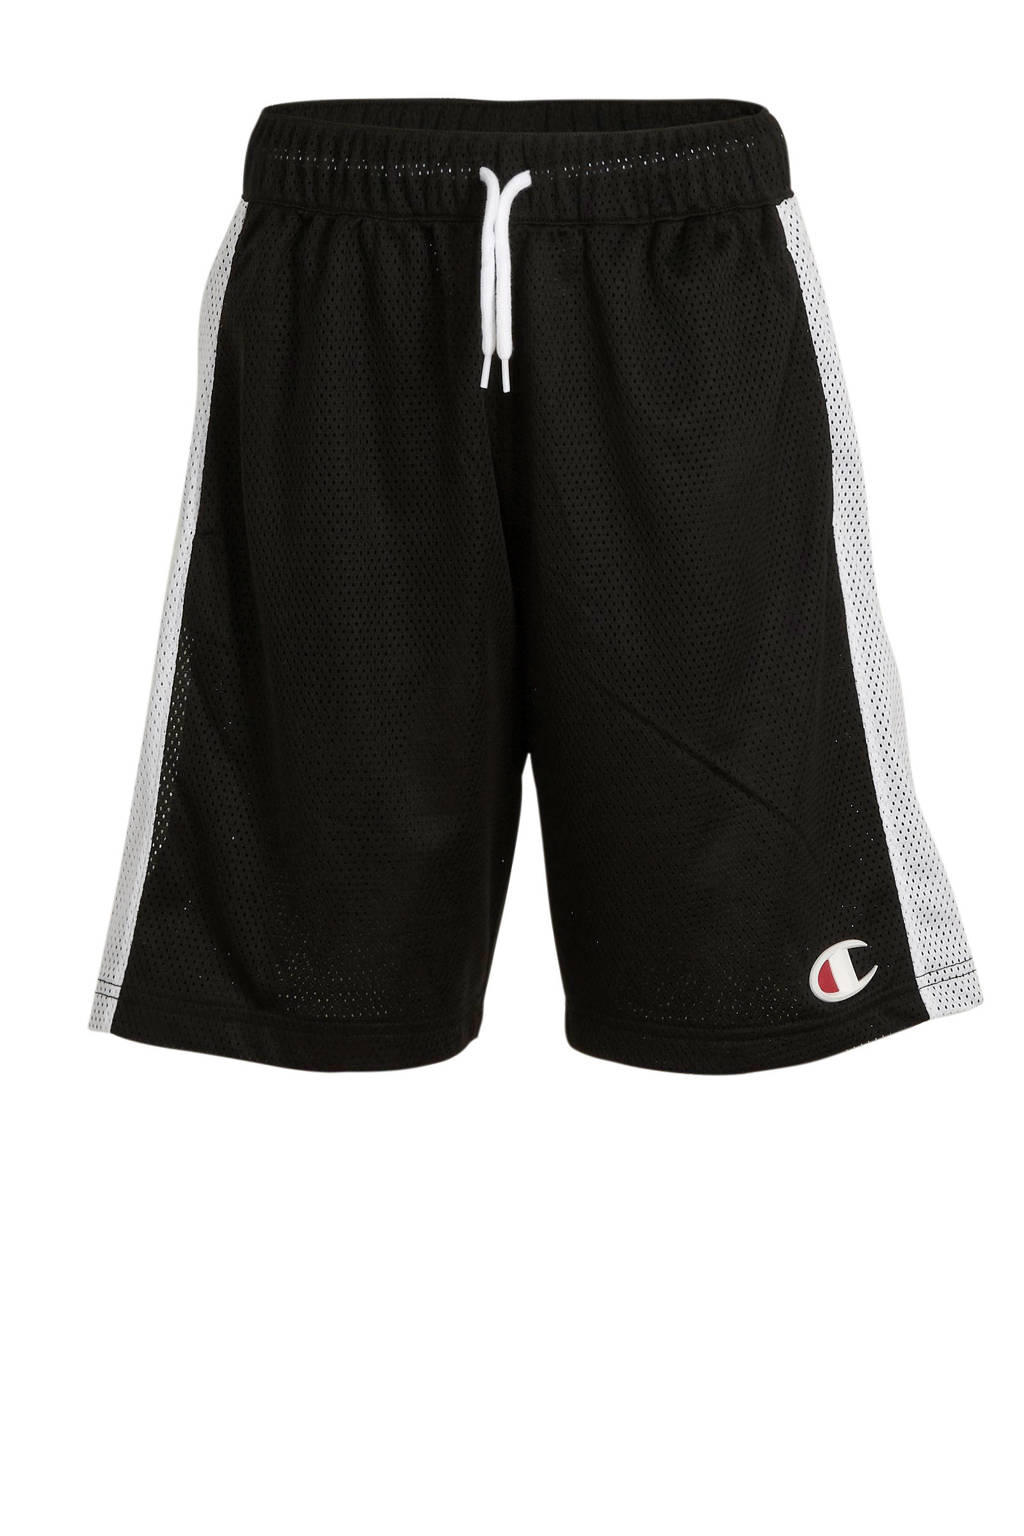 Champion loose fit short met logo zwart/wit, Zwart/wit